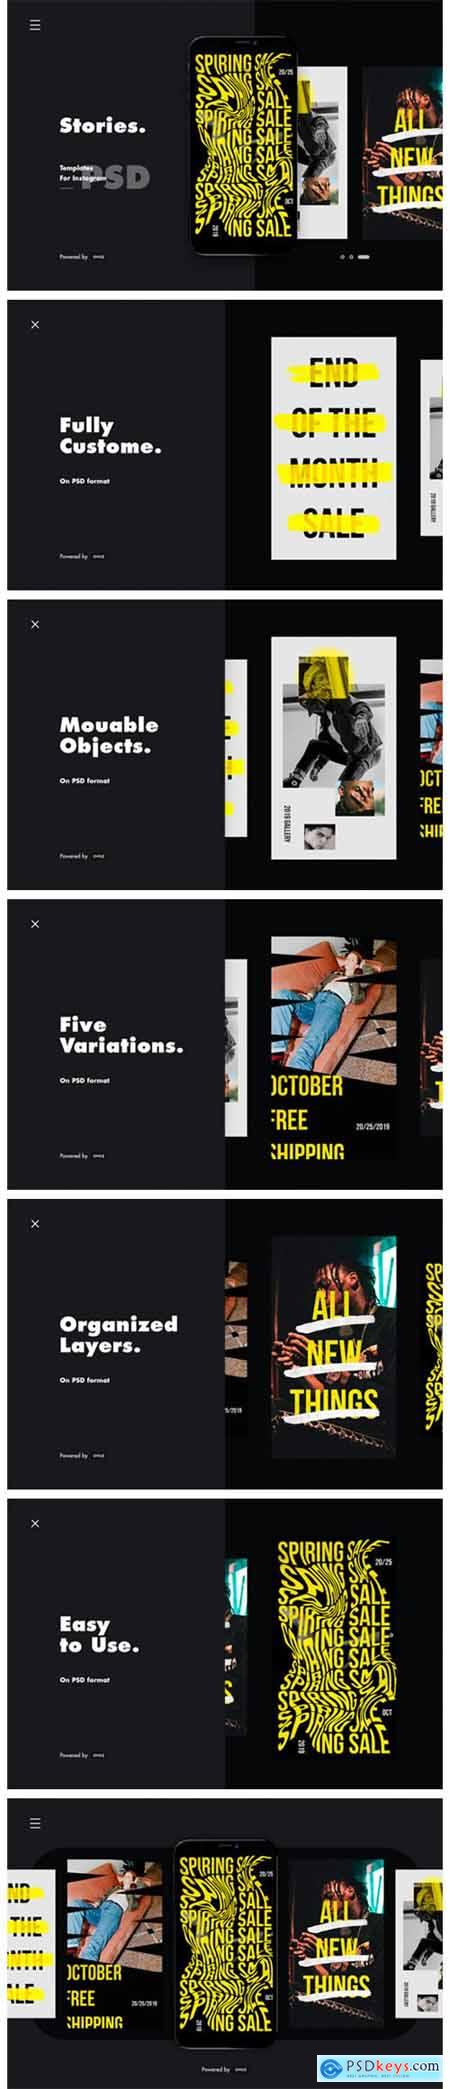 Instagram Story Template 1915855